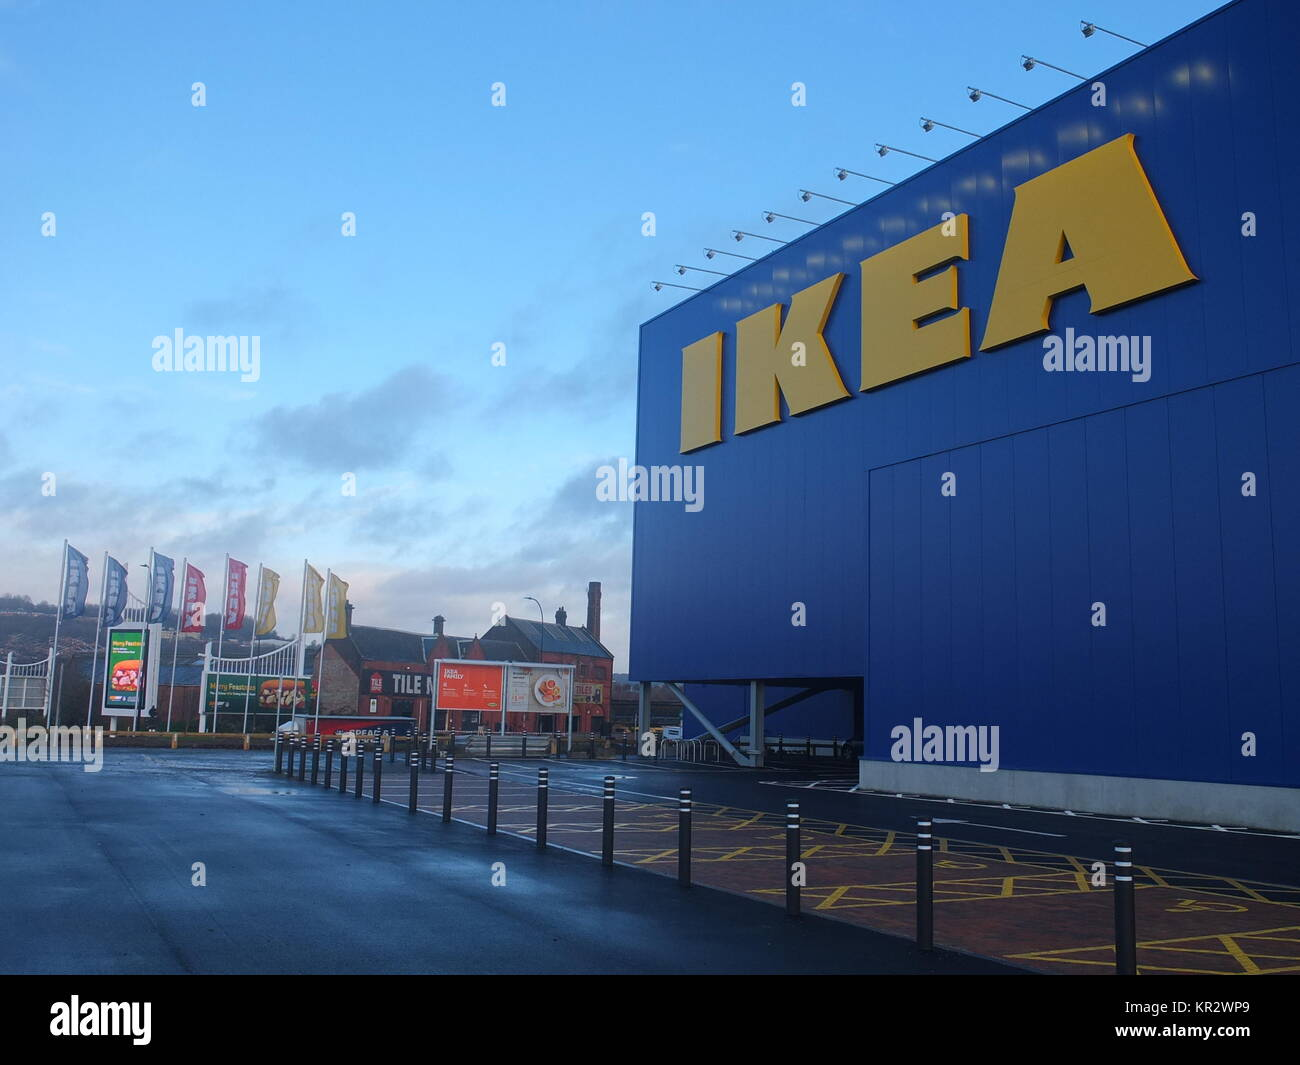 Exterior of new Ikea store in Sheffield, opened in 2017 - Stock Image